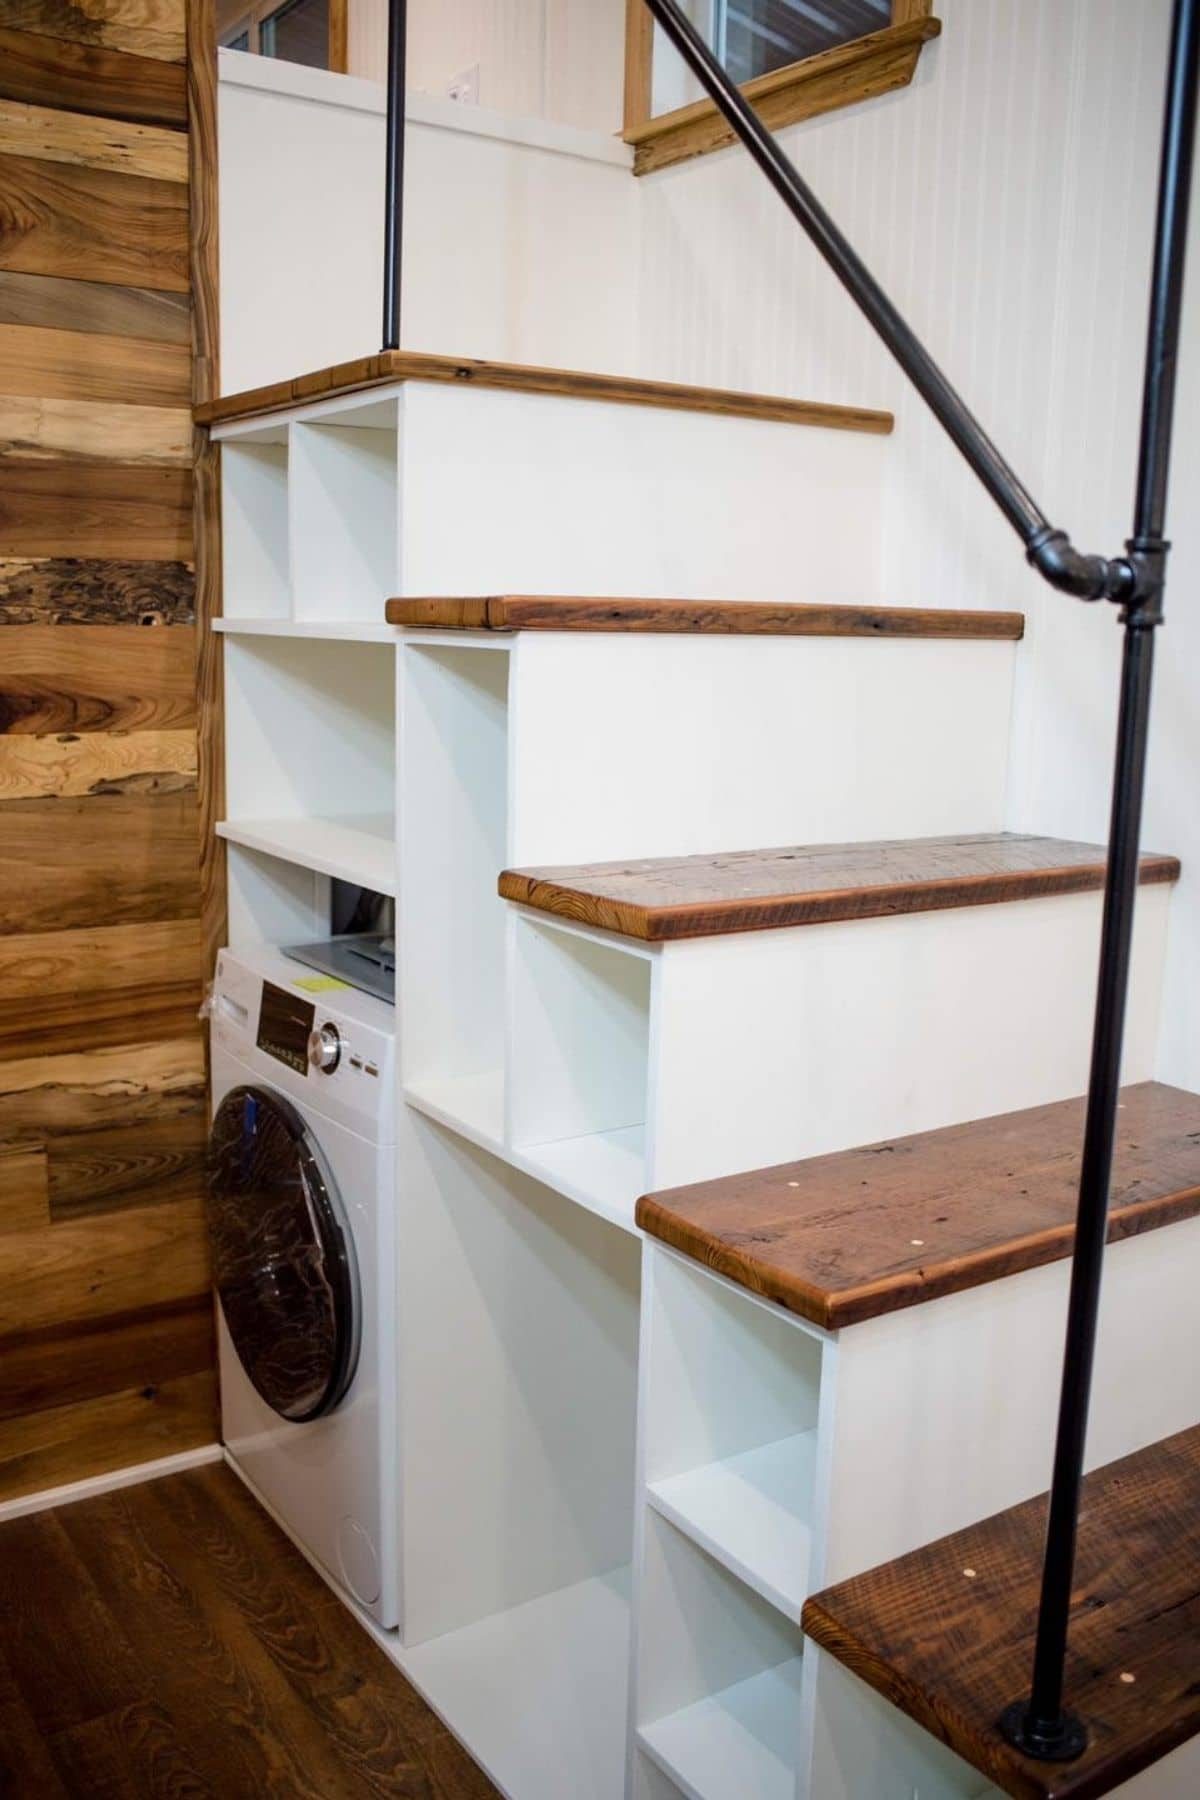 White stairs with cubbies holding washer